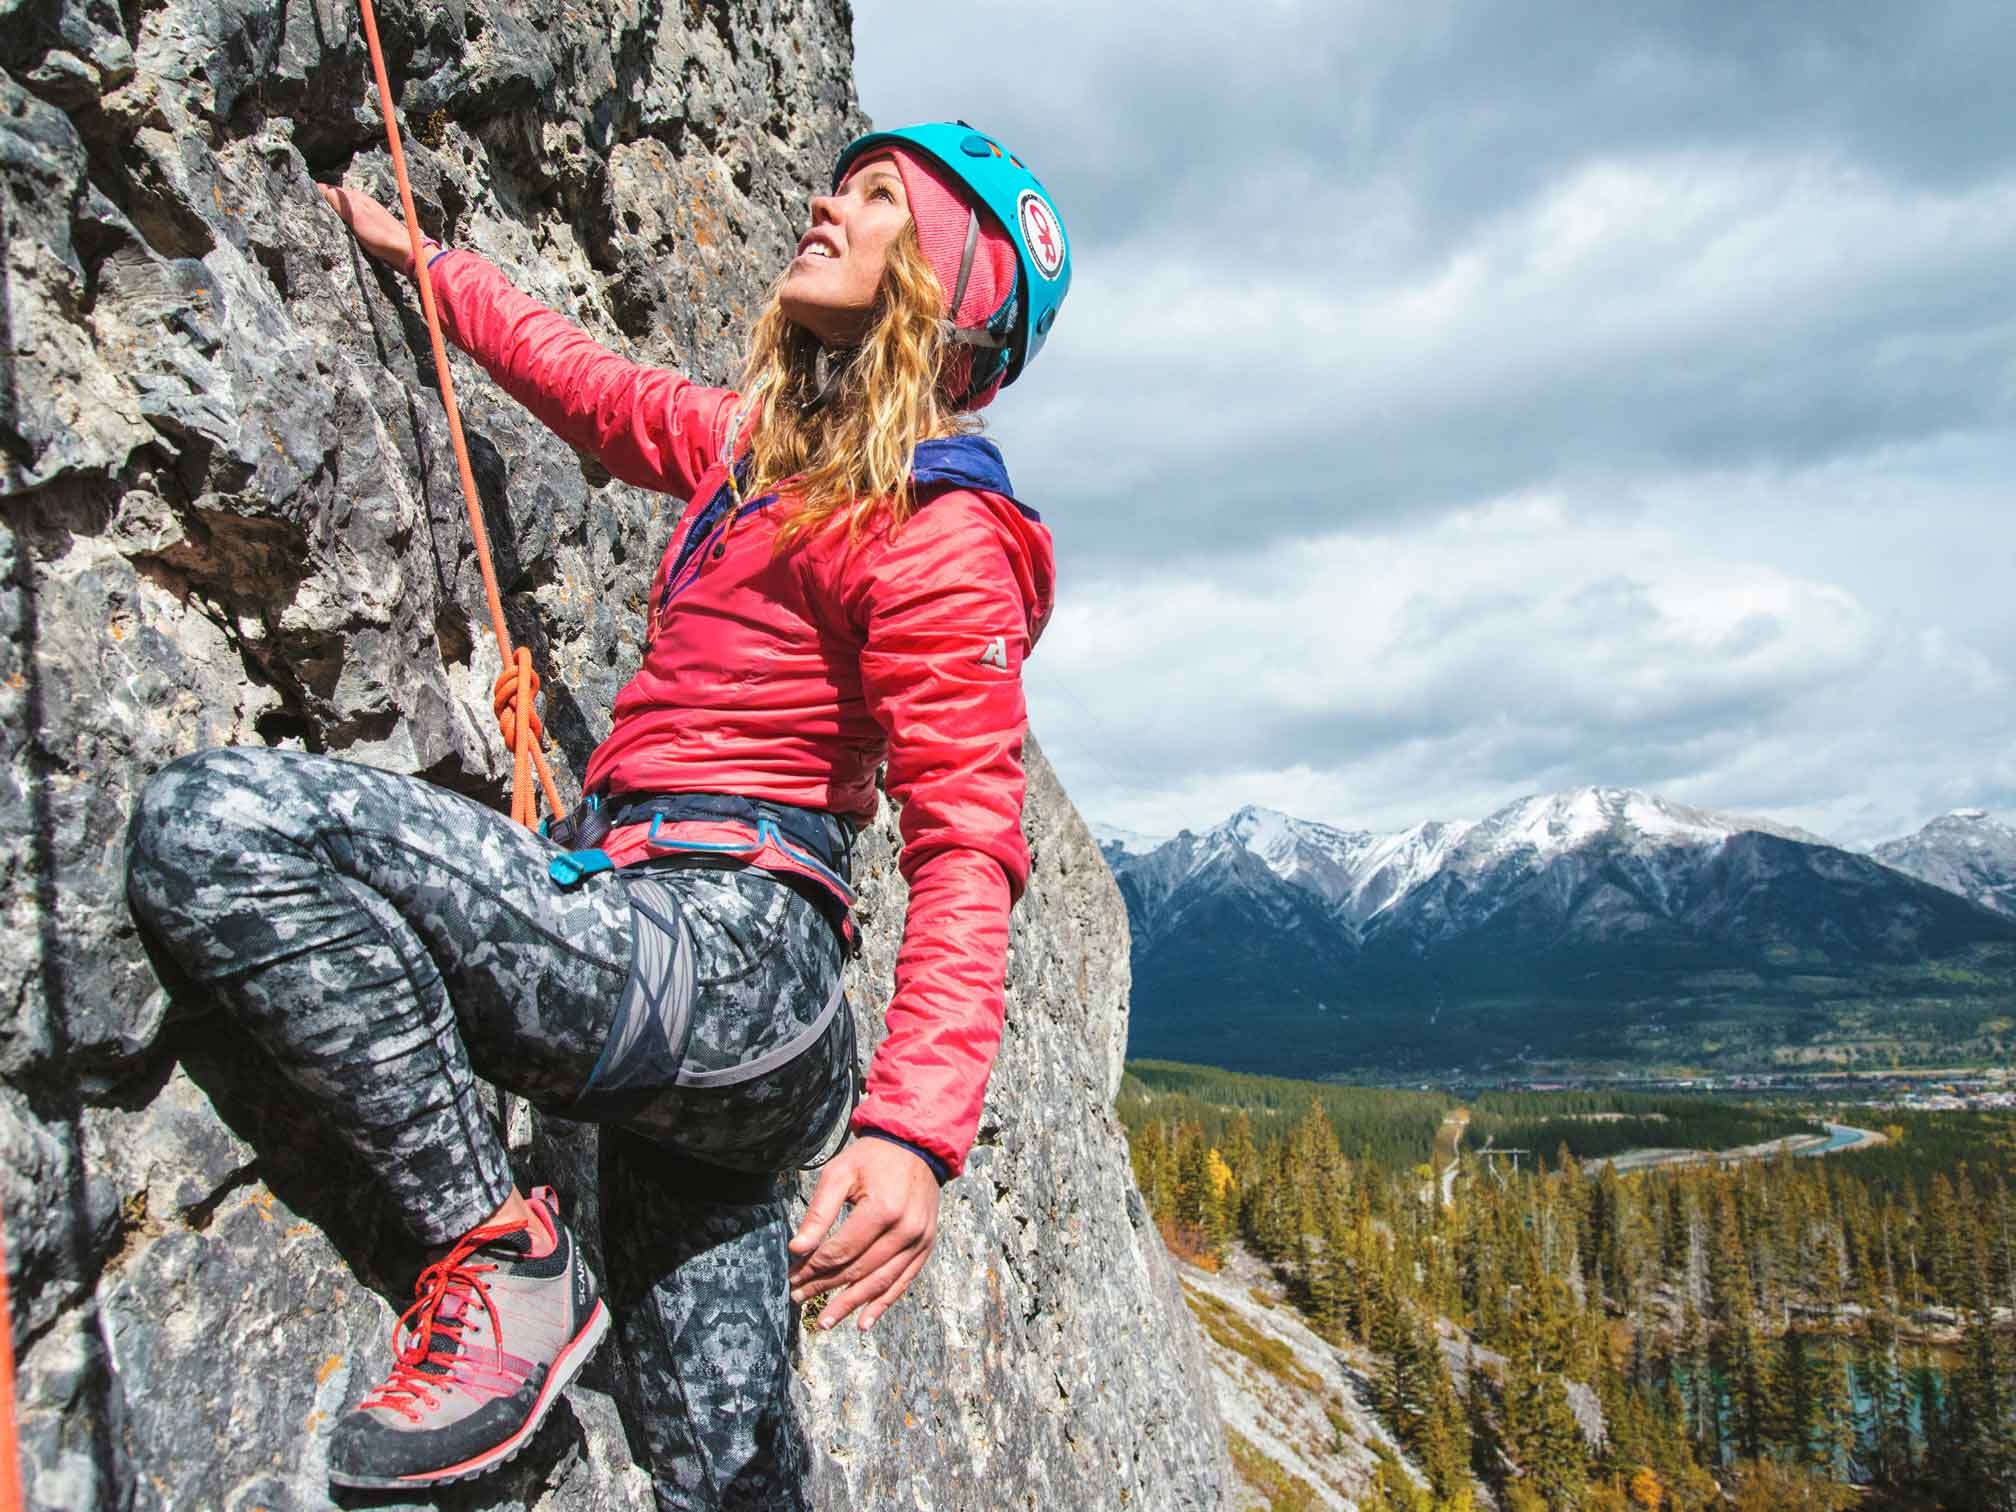 Climbing-in-Canmore-by-Victoria-Wakefield-@hike365